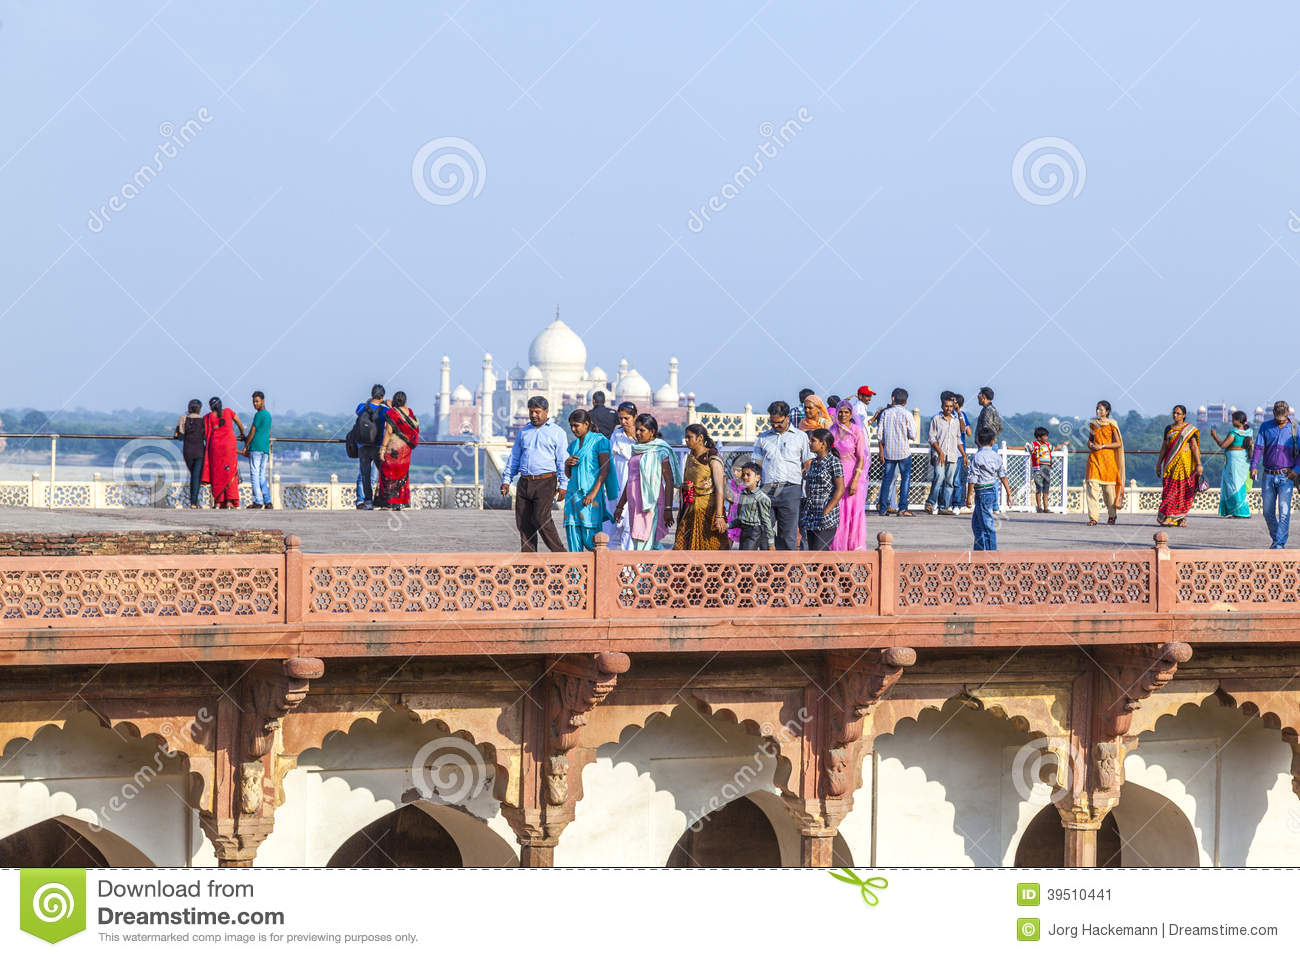 Tourists in the Red Fort in Agra with the Taj Mahal in the background